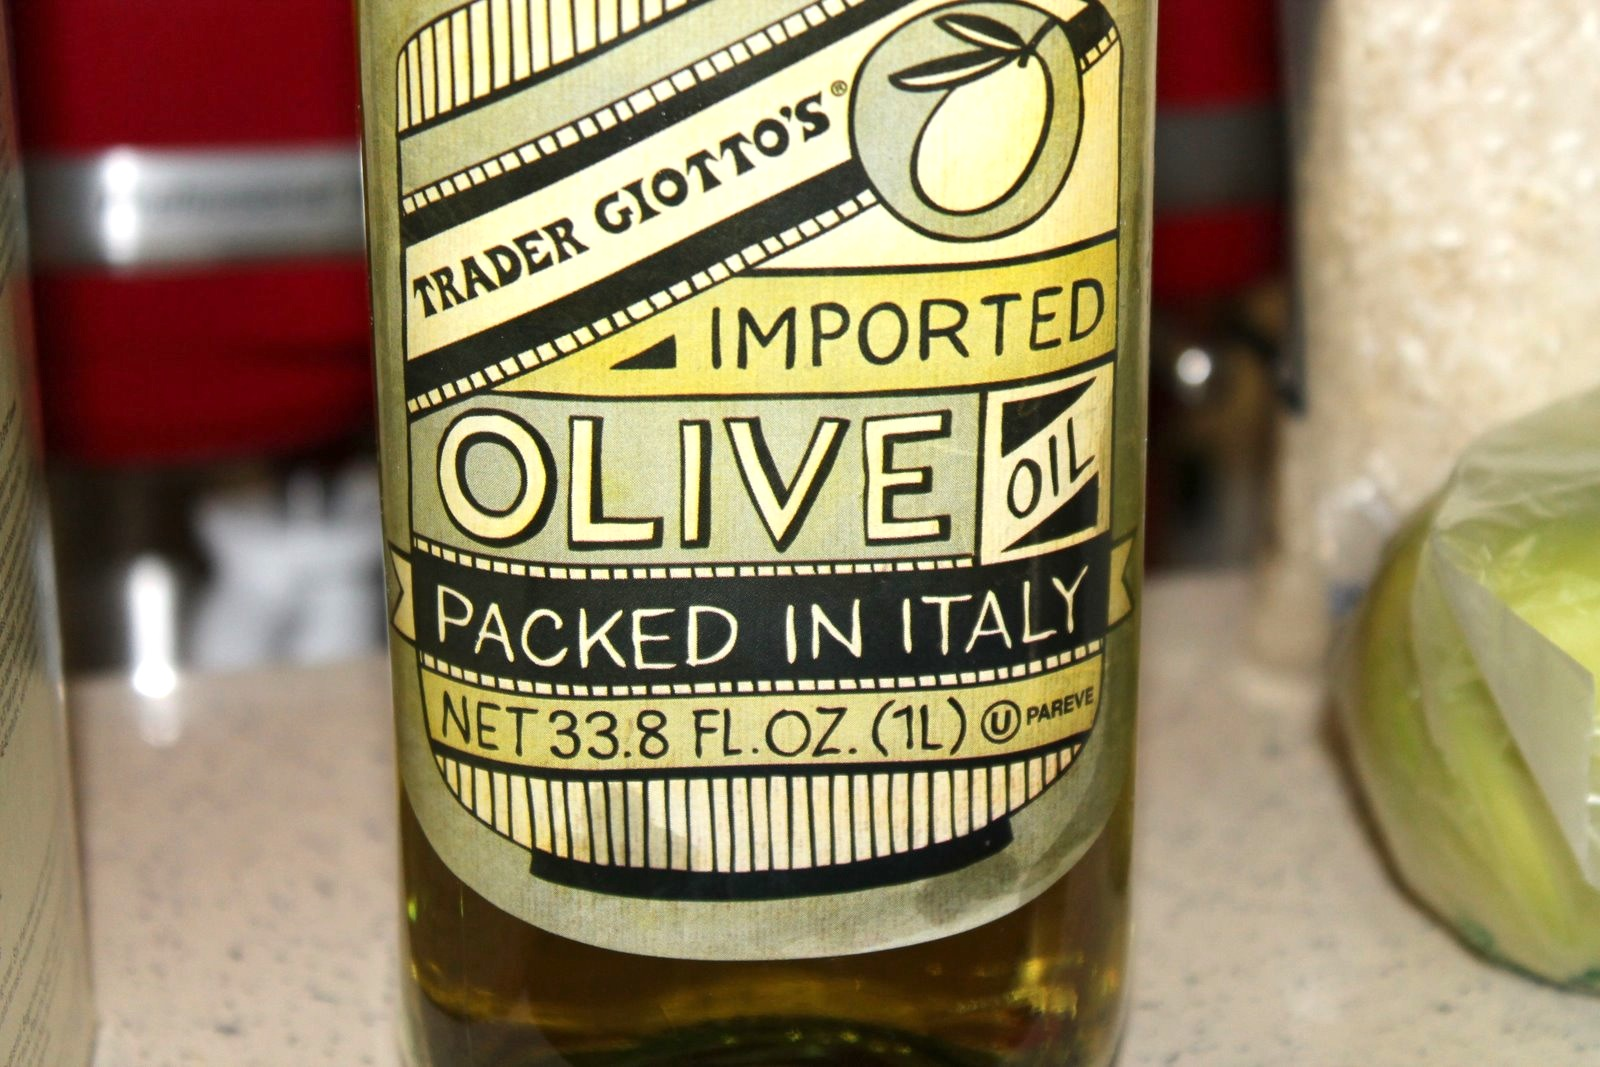 Exacting About Extracting, Backes Backs Olive Oil